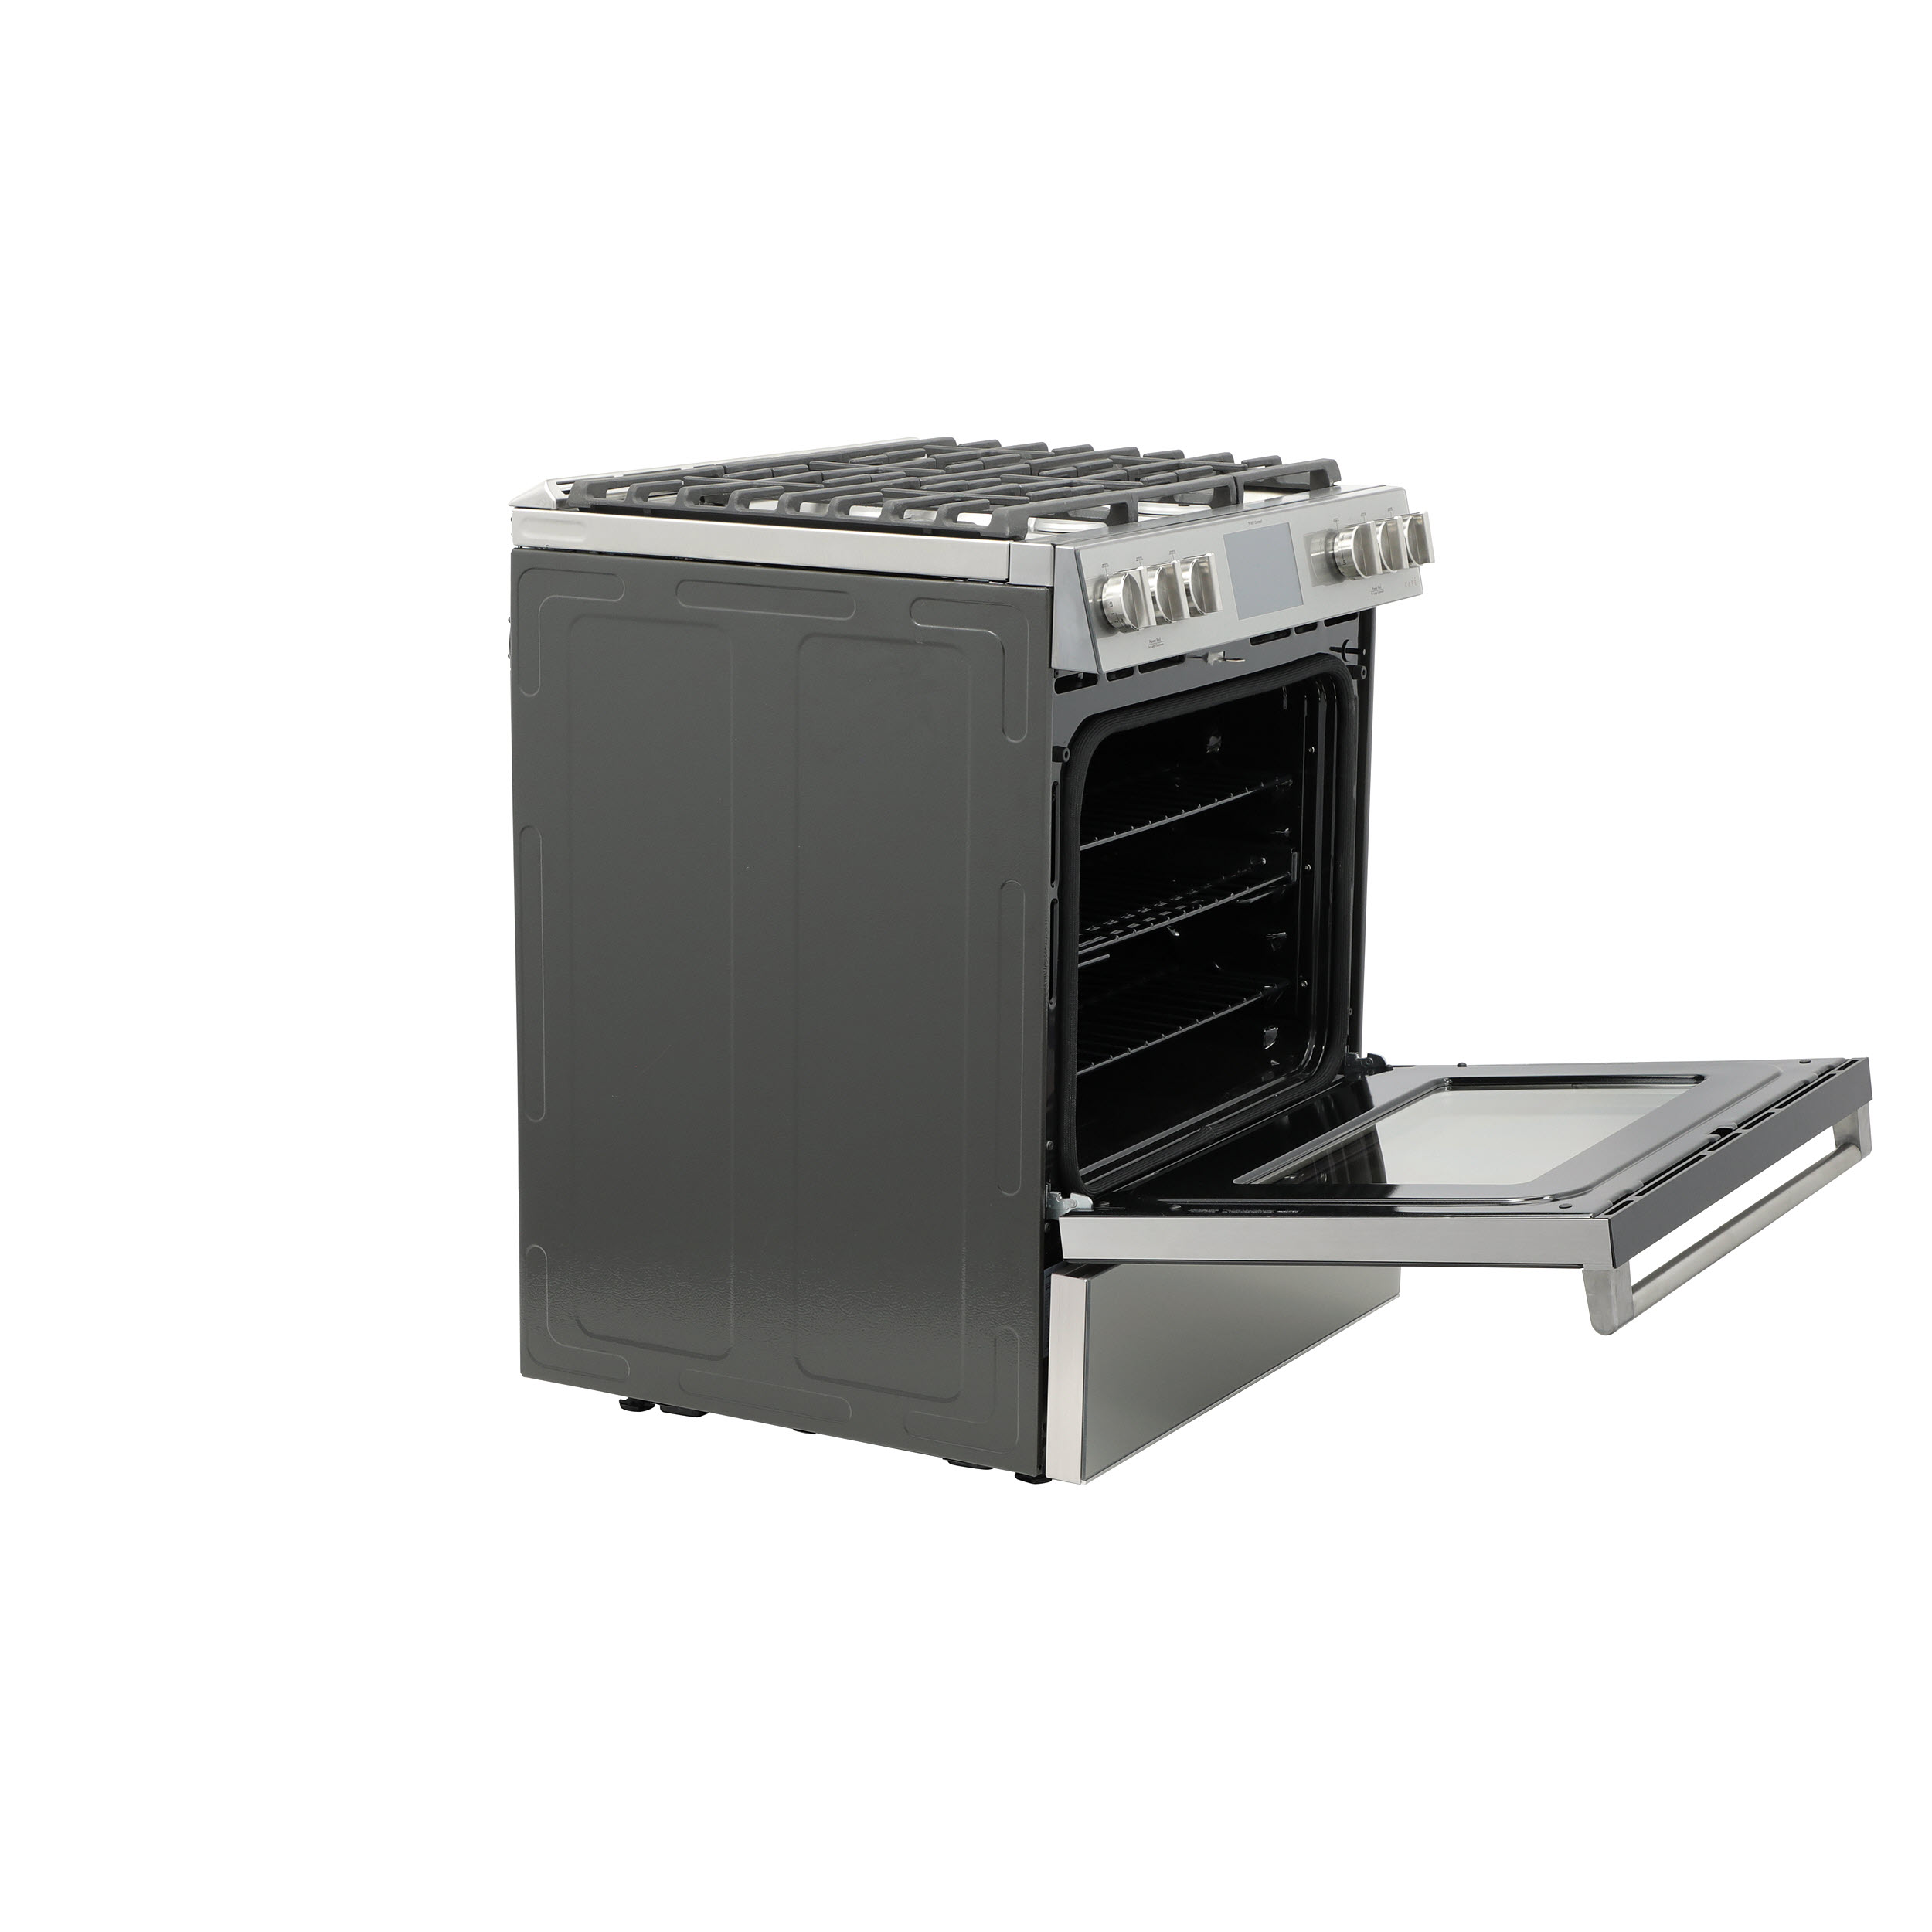 "Model: C2S900M2NS5 | Cafe Café™ 30"" Smart Slide-In, Front-Control, Dual-Fuel Range in Platinum Glass"